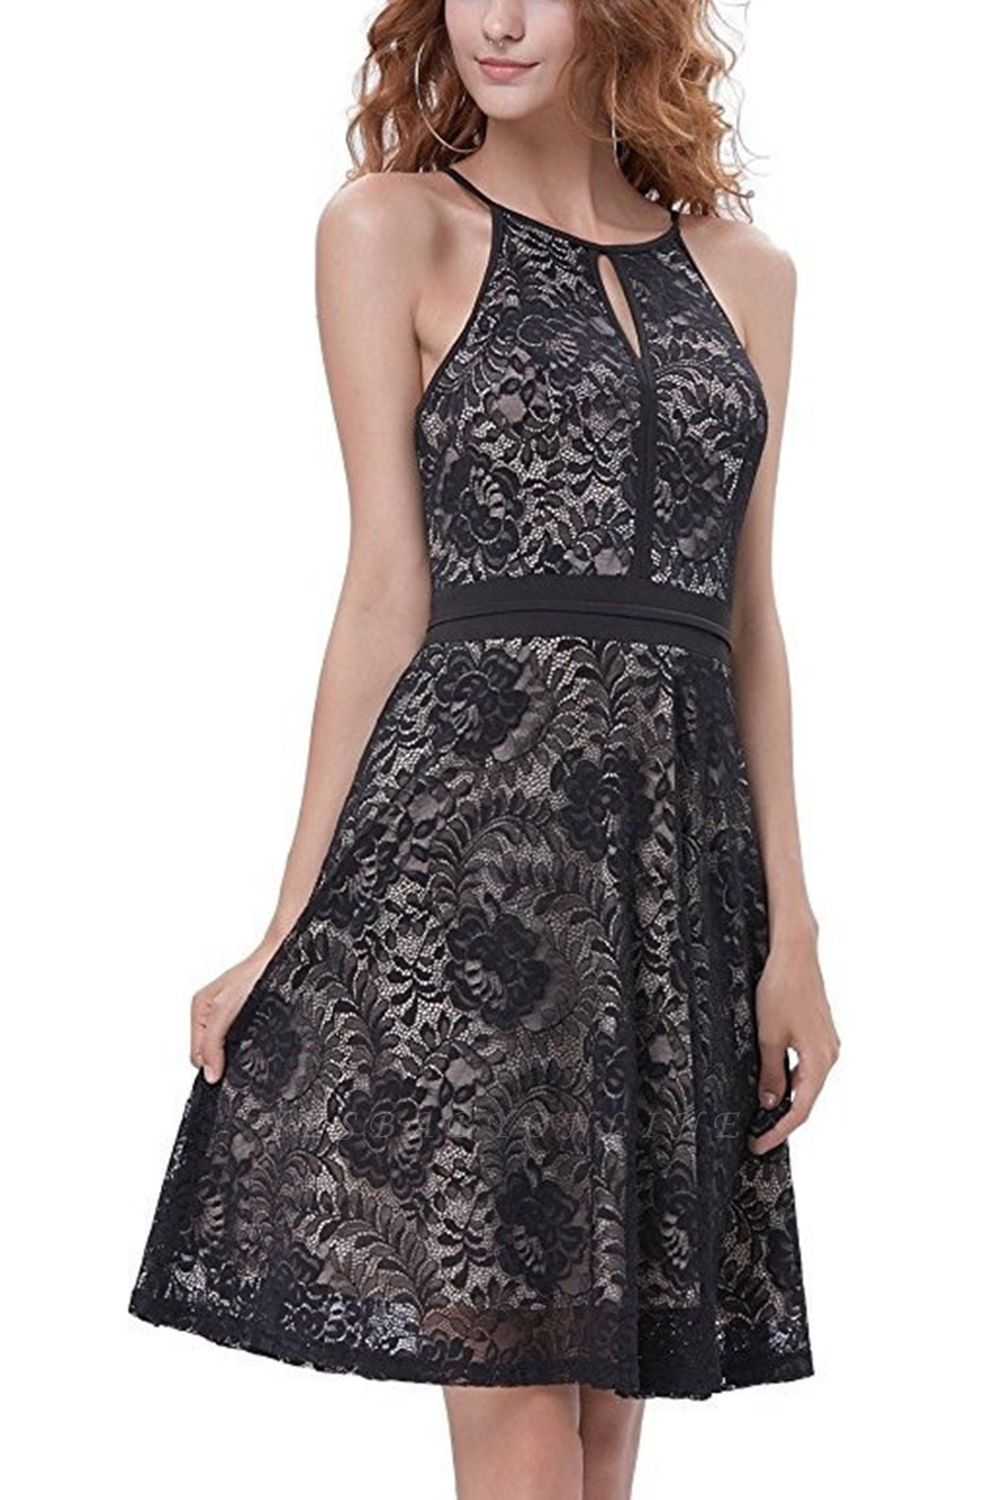 Women's Halter Floral Lace Cocktail Party Dress Homecoming Dress